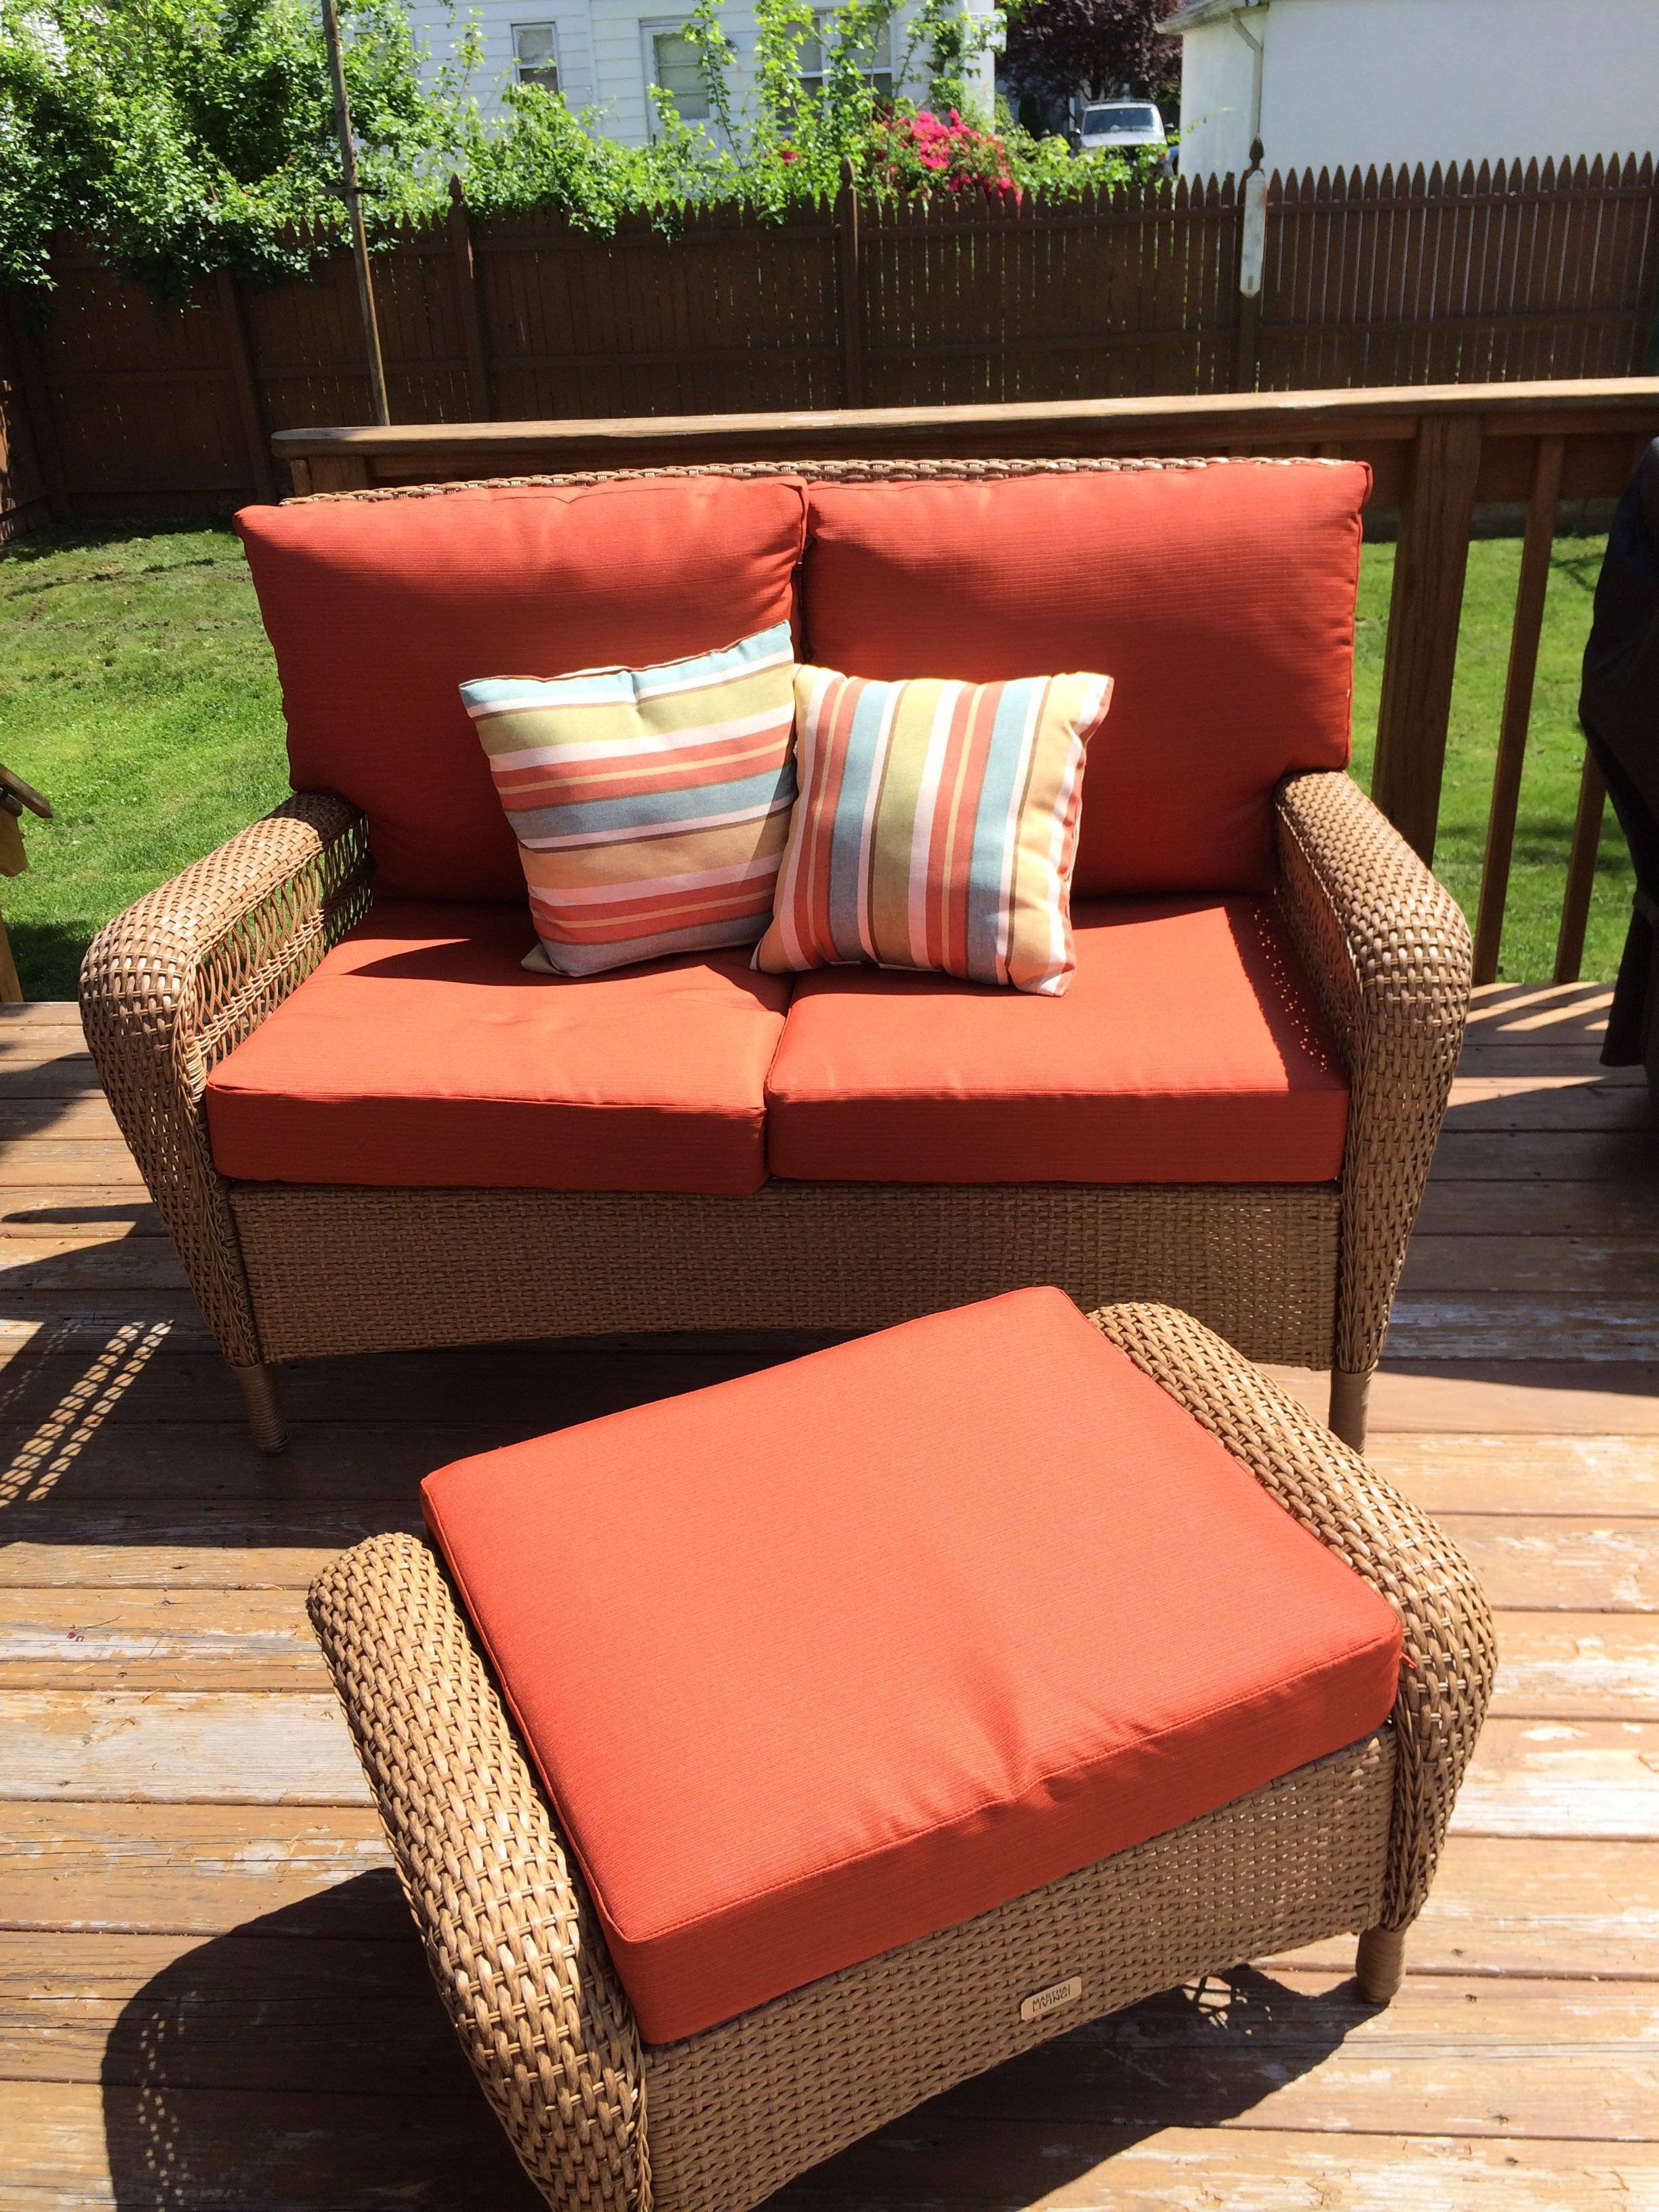 Stewart Martha Patio Furniture